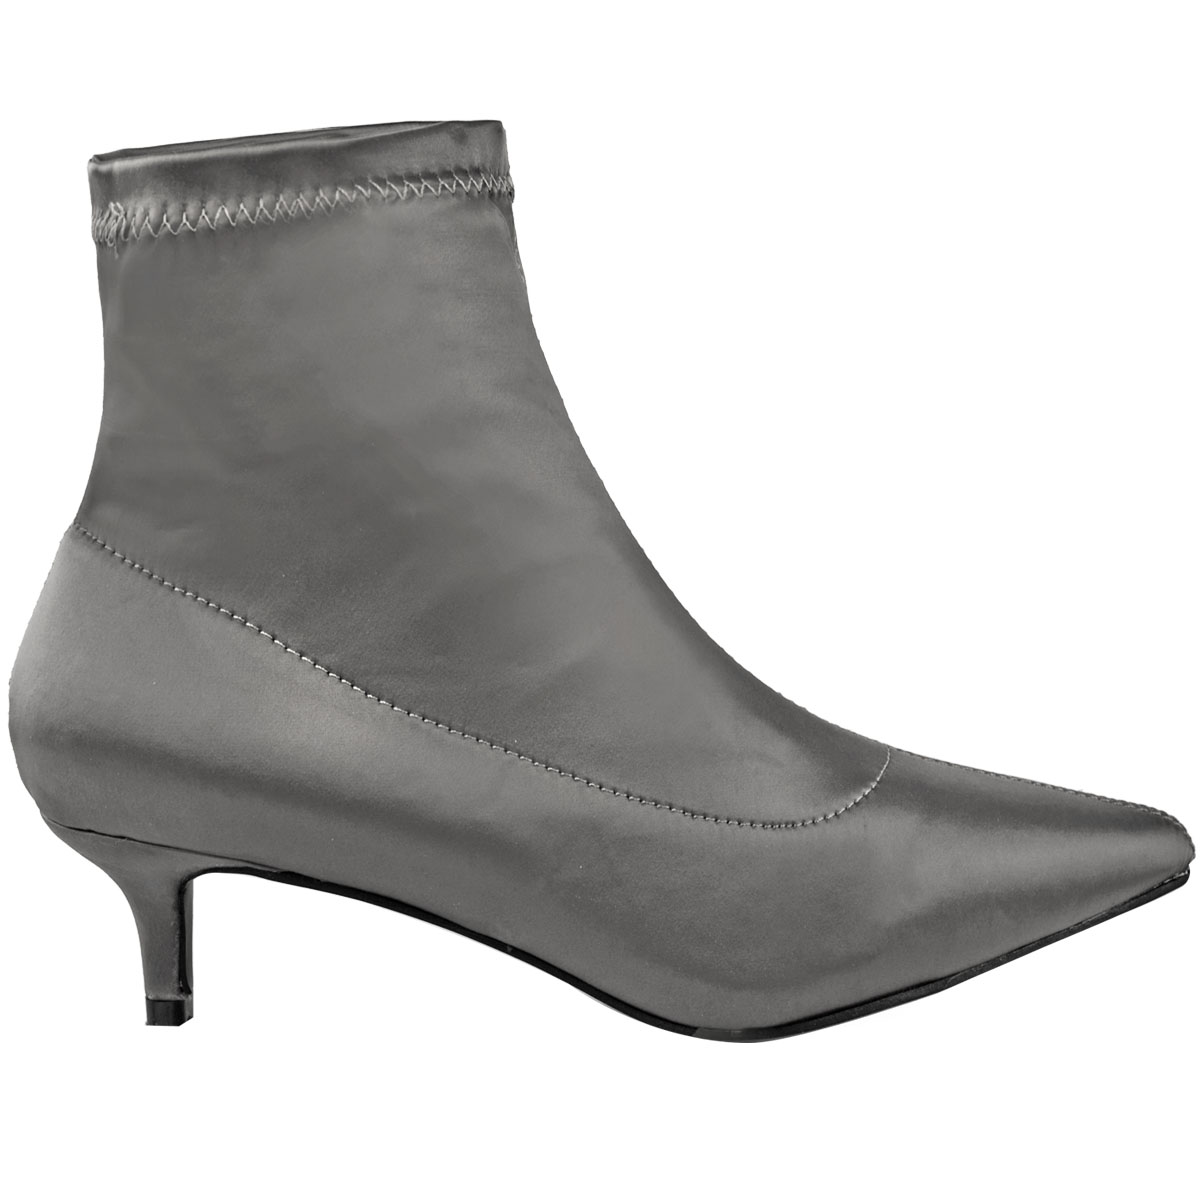 All our women's shoes are so comfortable that you won't want to be without them! Women's wholesale shoes for sale online now. Women's Slouch Boots - Double Buckle Straps / Low Heel. Sale $ Original $ istressed Snap and Buckle Booties - Sturdy Heel and Sole Construction. Sale $